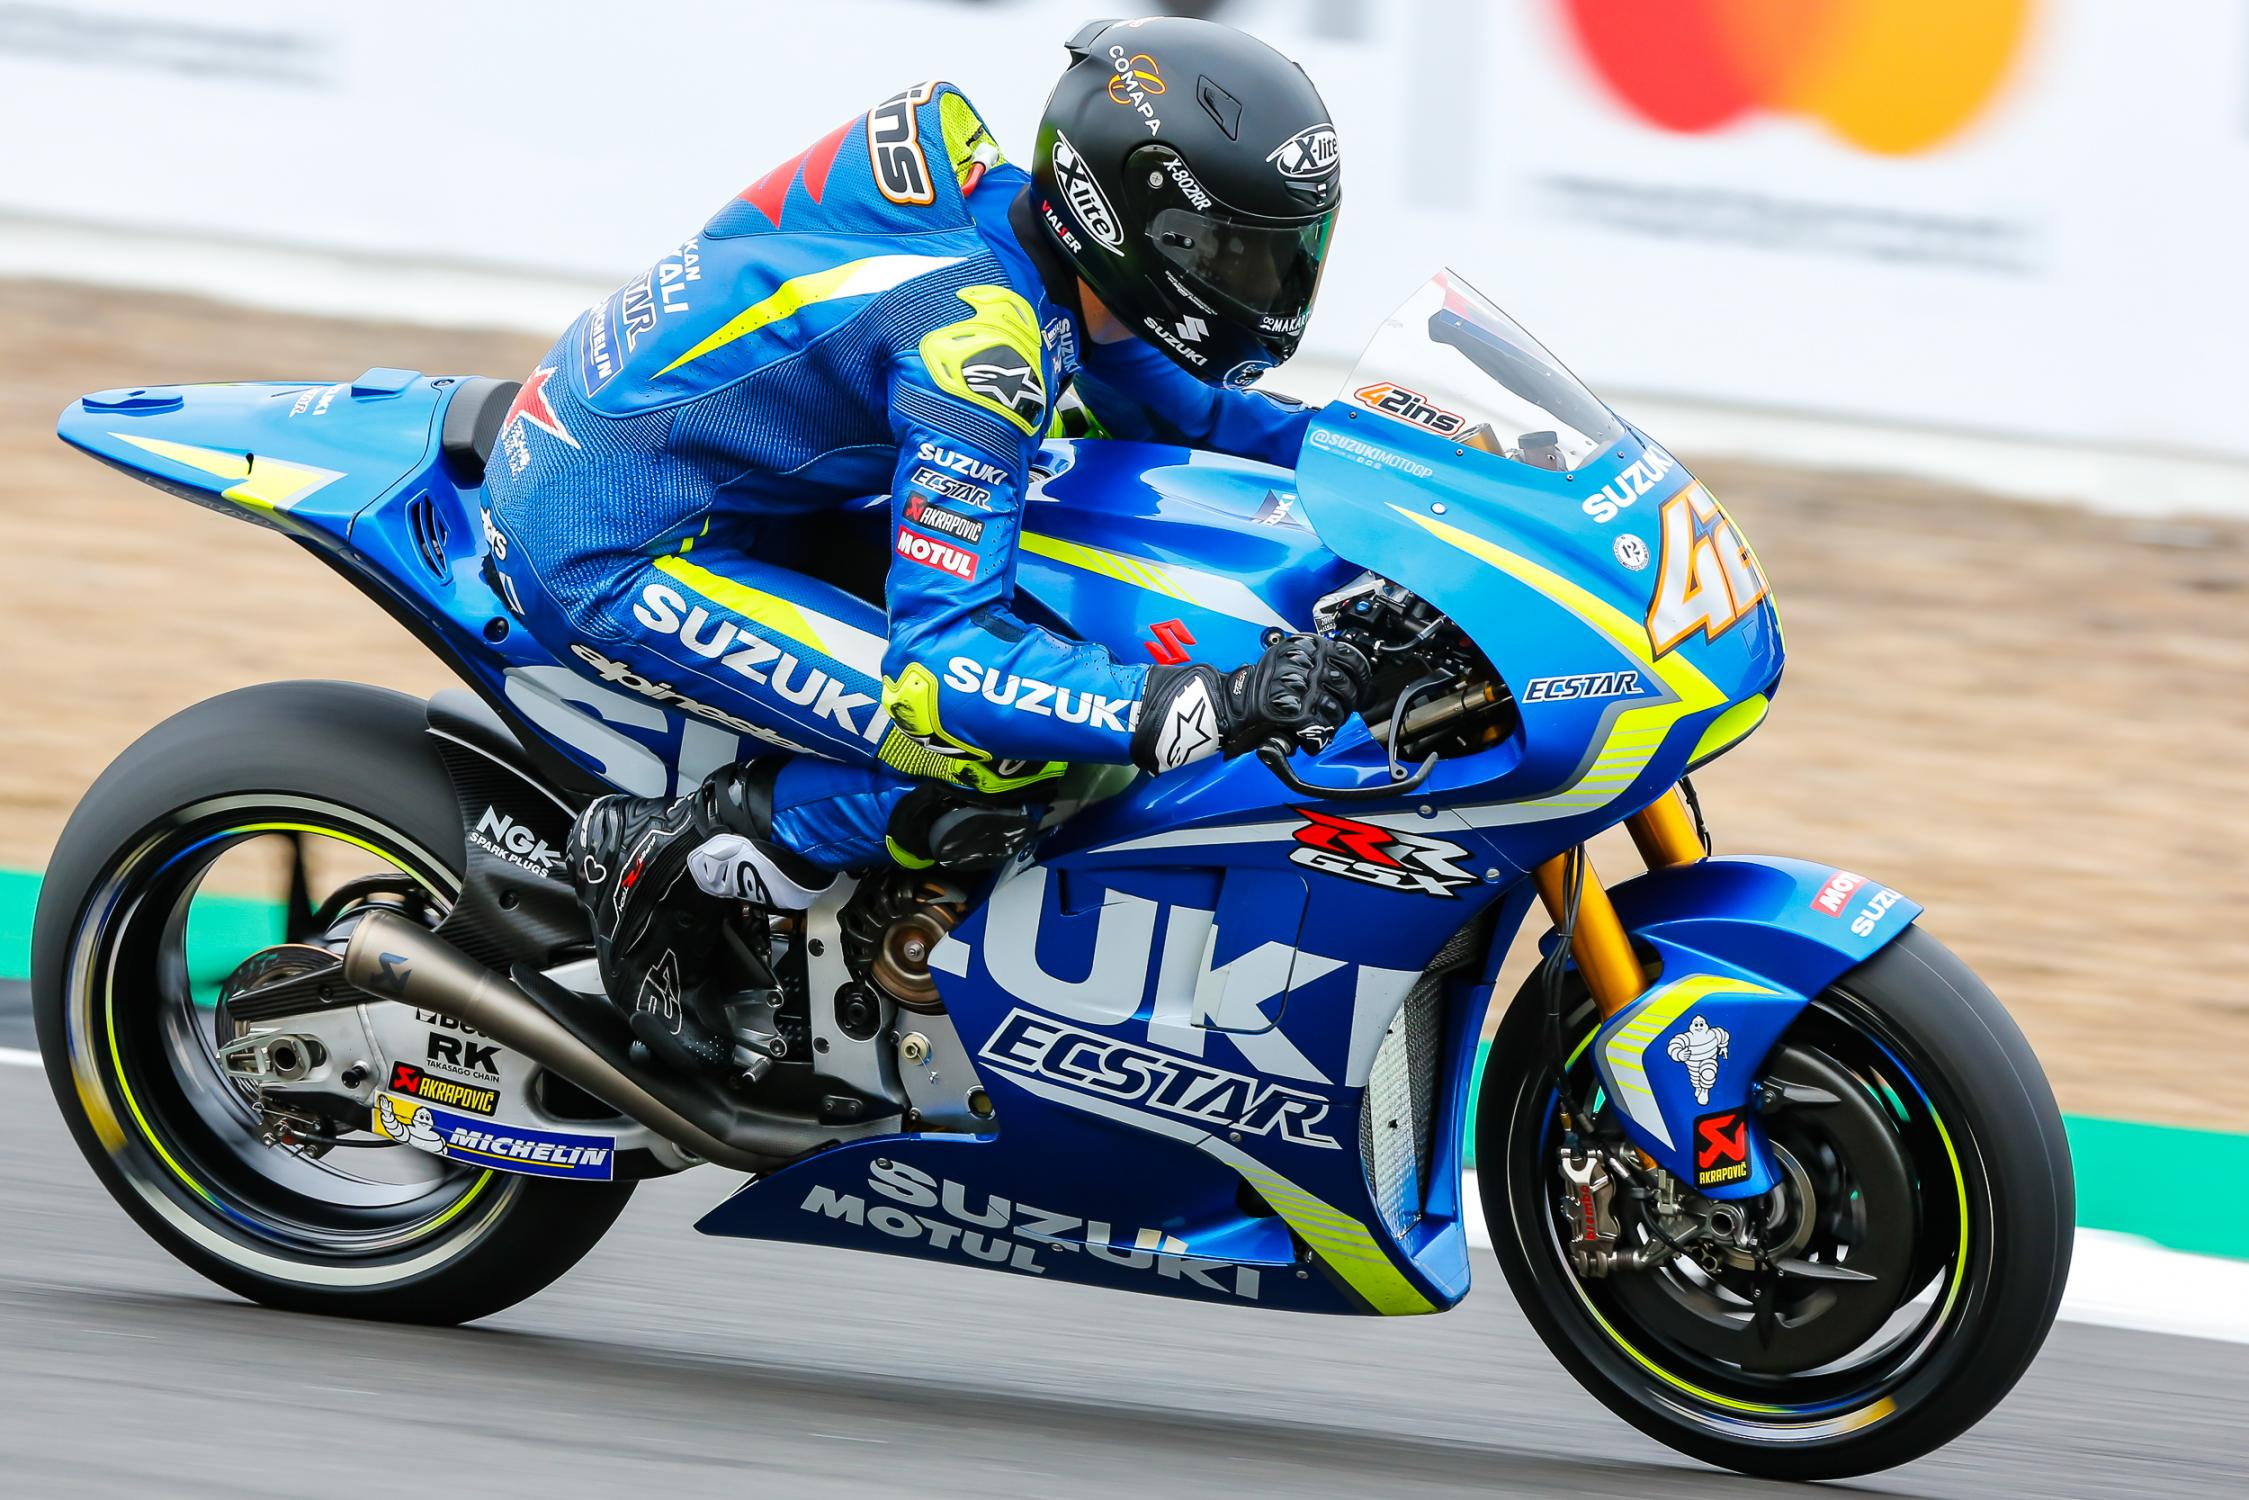 42-alex-rins-esp_gp_5847.gallery_full_top_fullscreen.jpg